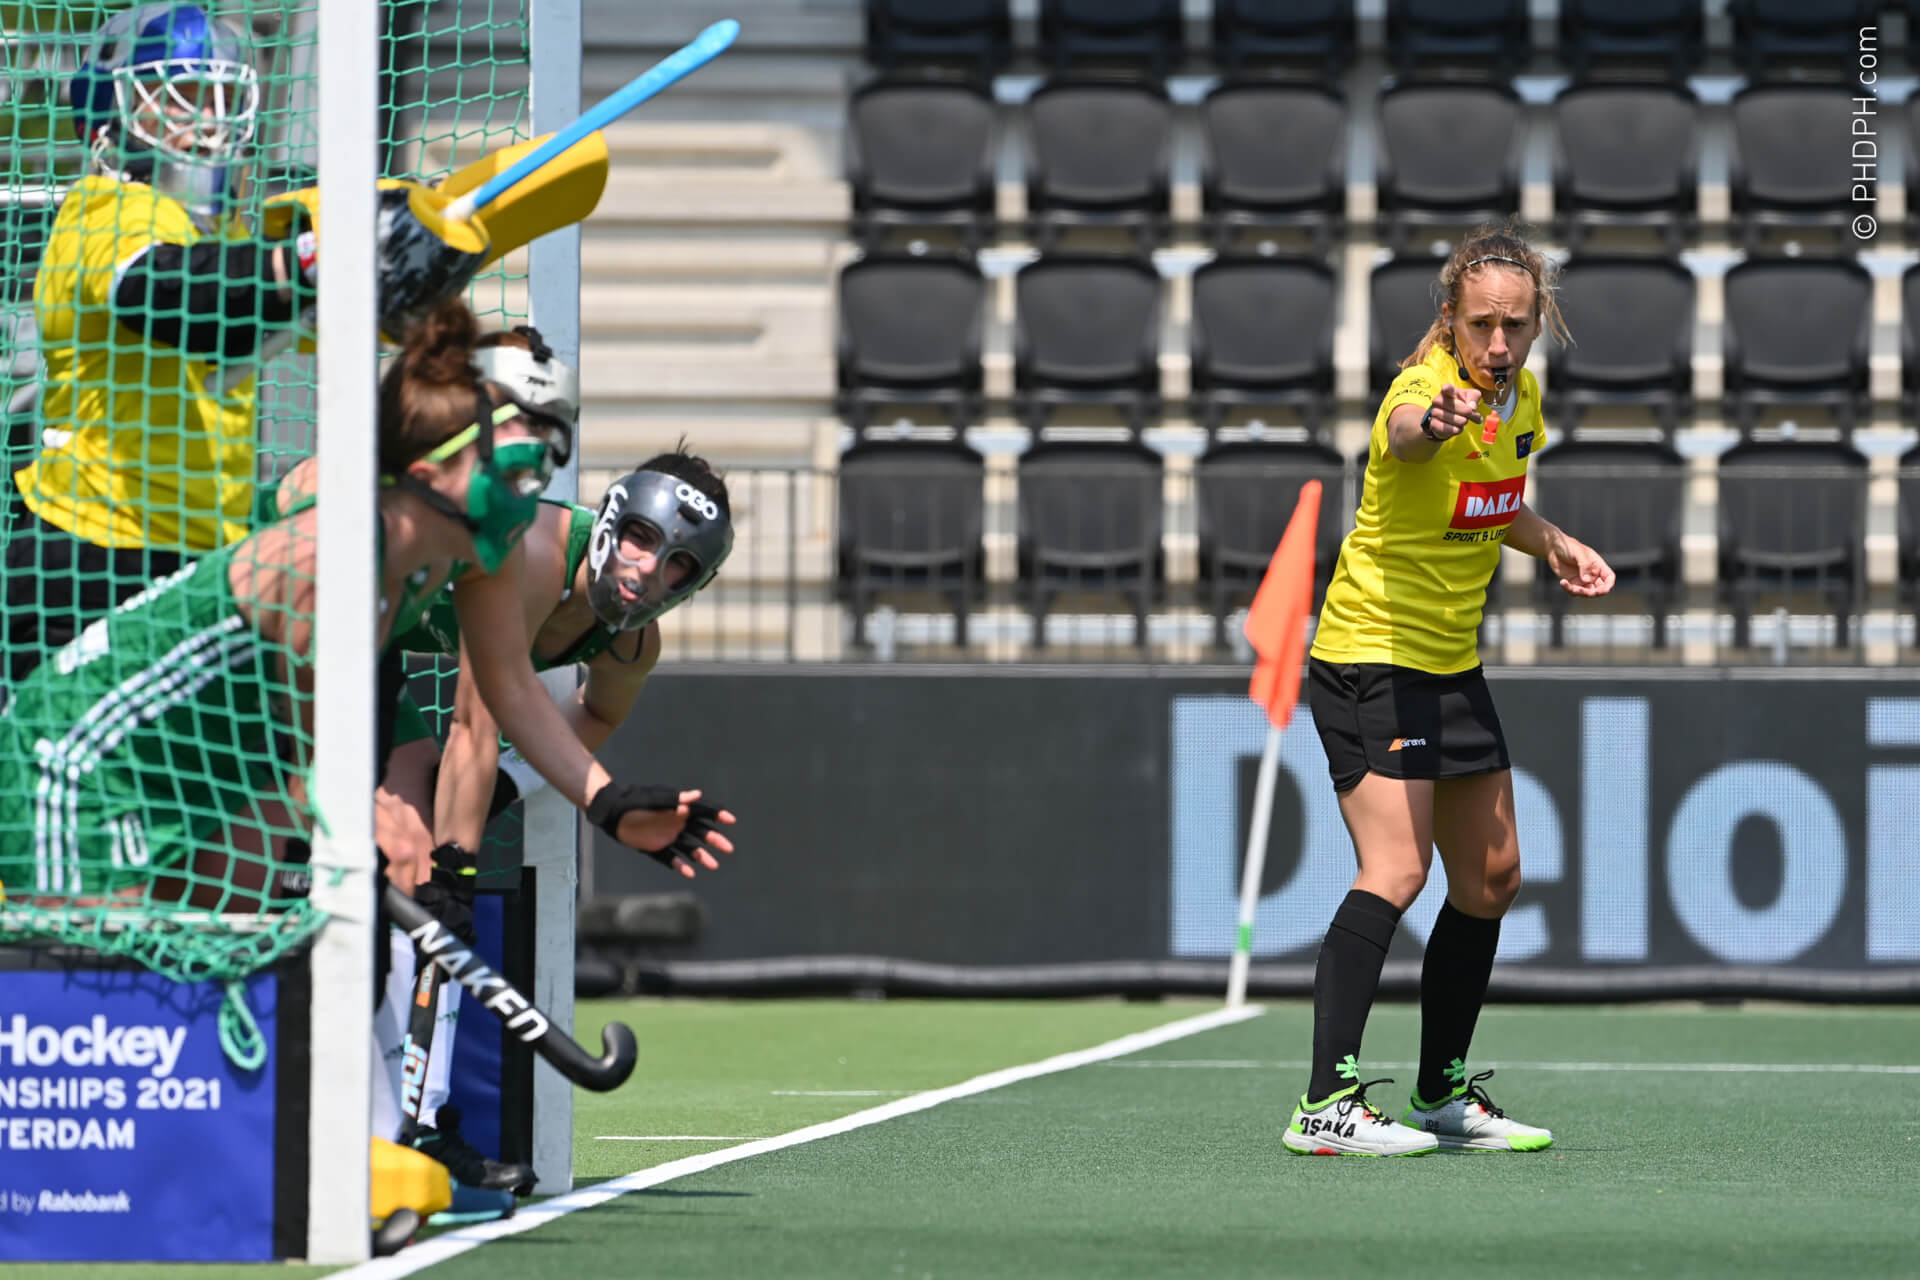 AMSTELVEEN, THE NETHERLANDS - JUNE 9 :  pictured during the Women's Euro Hockey championship 2021 between Spain v Ireland on June 09, 2021 in Amstelveen, The Netherlands, 09/06/2021  Photo by PHDPH